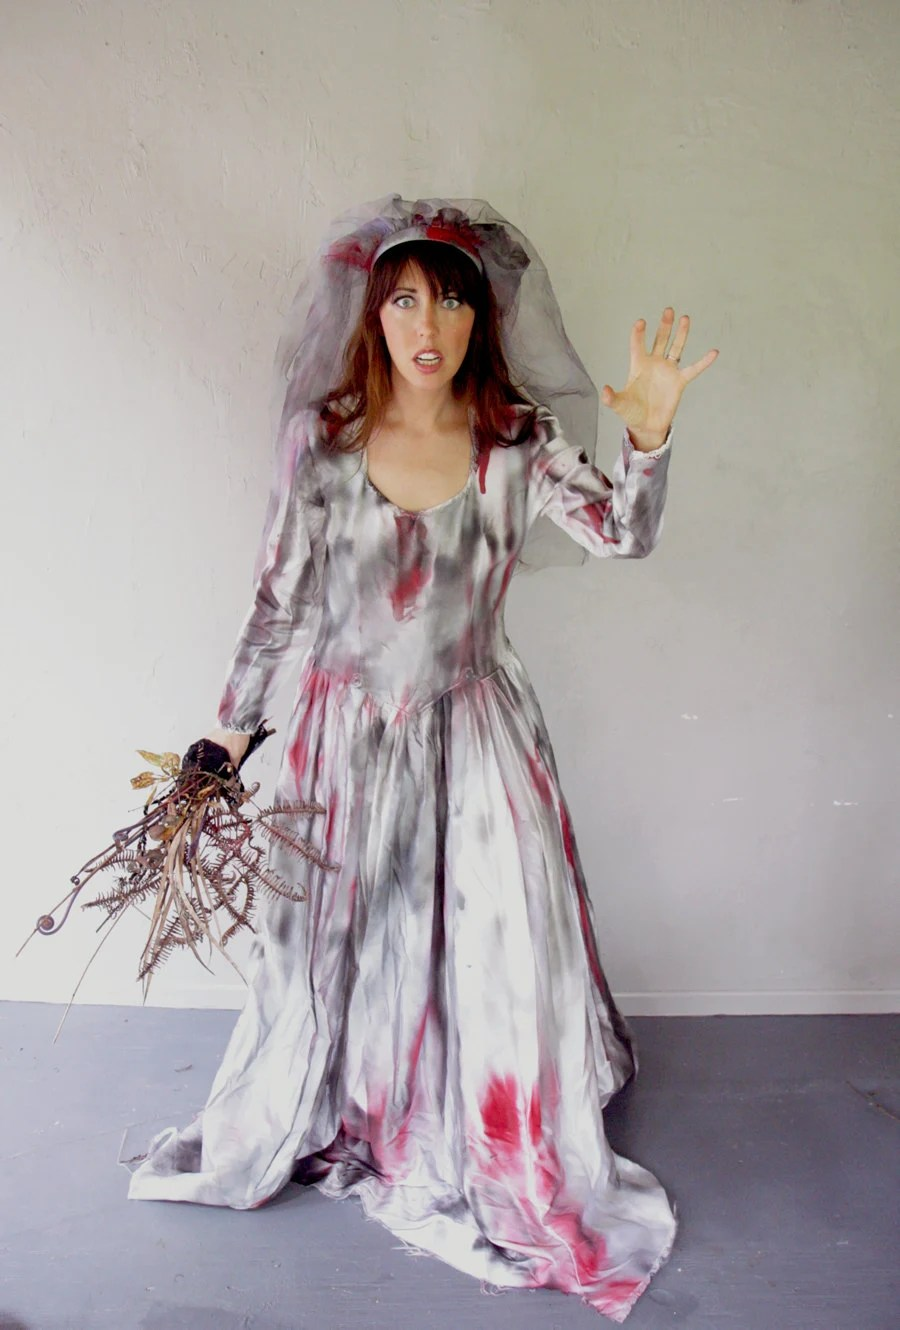 Zombie Bride costume  scary wedding bride Halloween costume